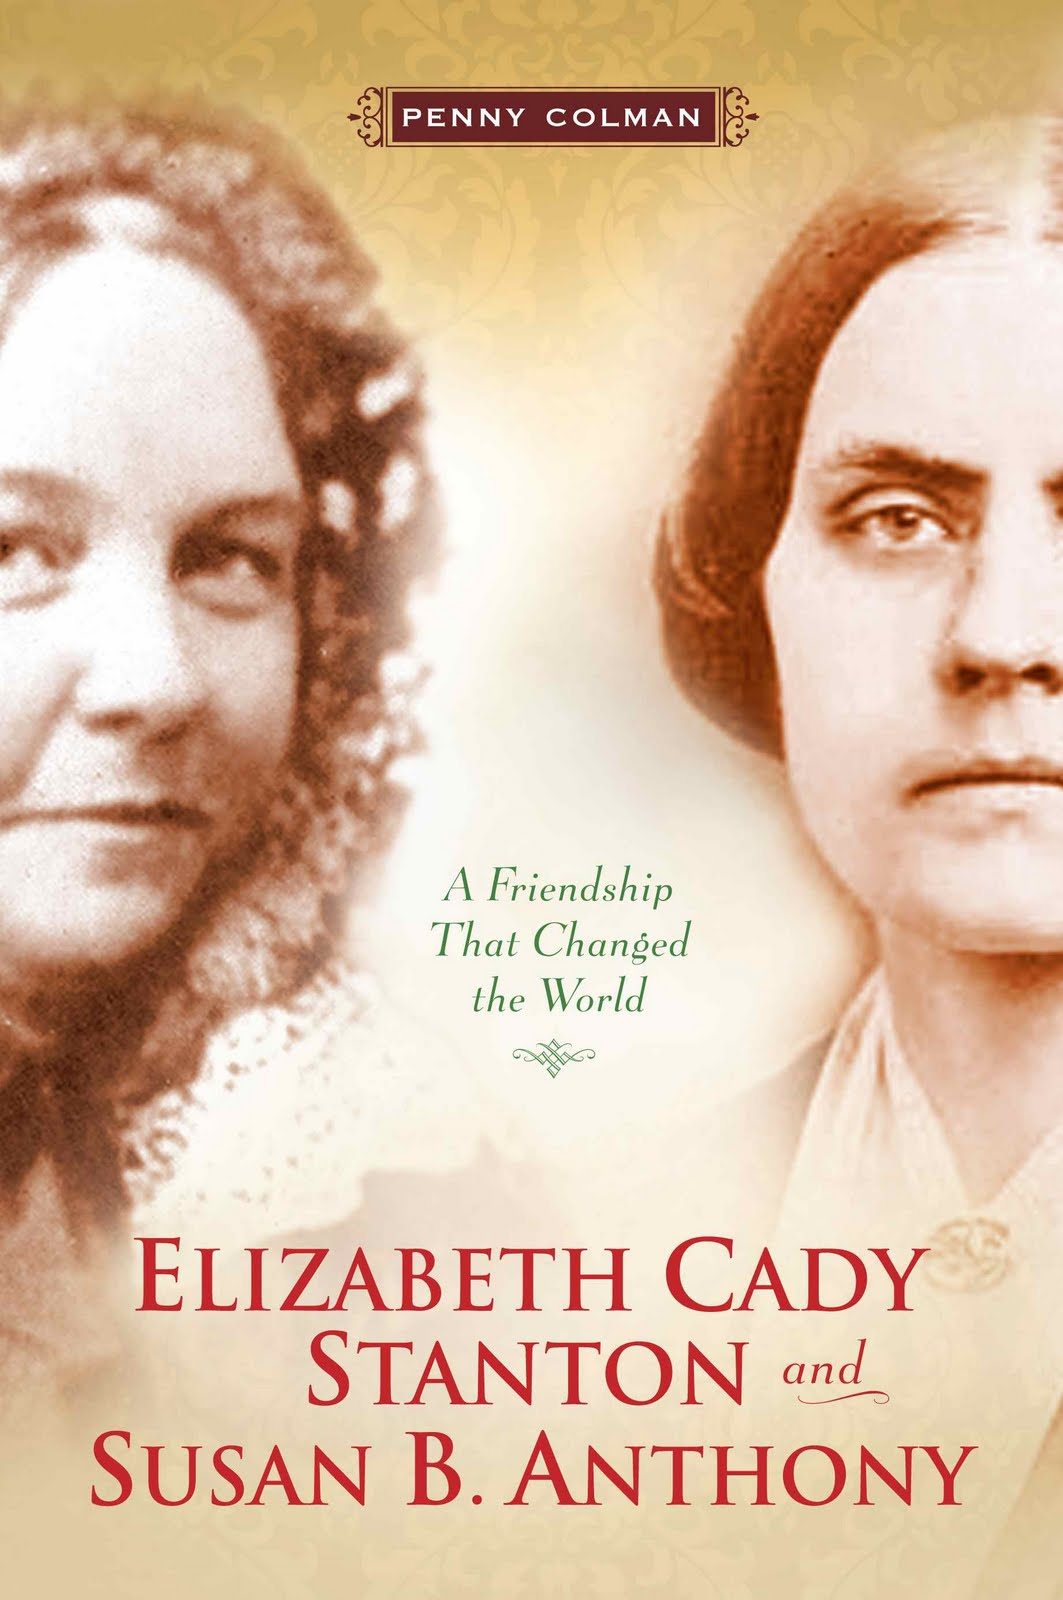 biographies of susan b anthony and elizabeth cady stanton Elizabeth cady stanton and susan b anthony anna howard shaw, another suffragist, wrote a description of the relationship between stanton and anthony in the story of a pioneer: she [miss anthony] often said that mrs stanton was the brains of the new association, while she herself was merely its hands and feet but in truth the two women worked marvelously together, for mrs stanton was a.